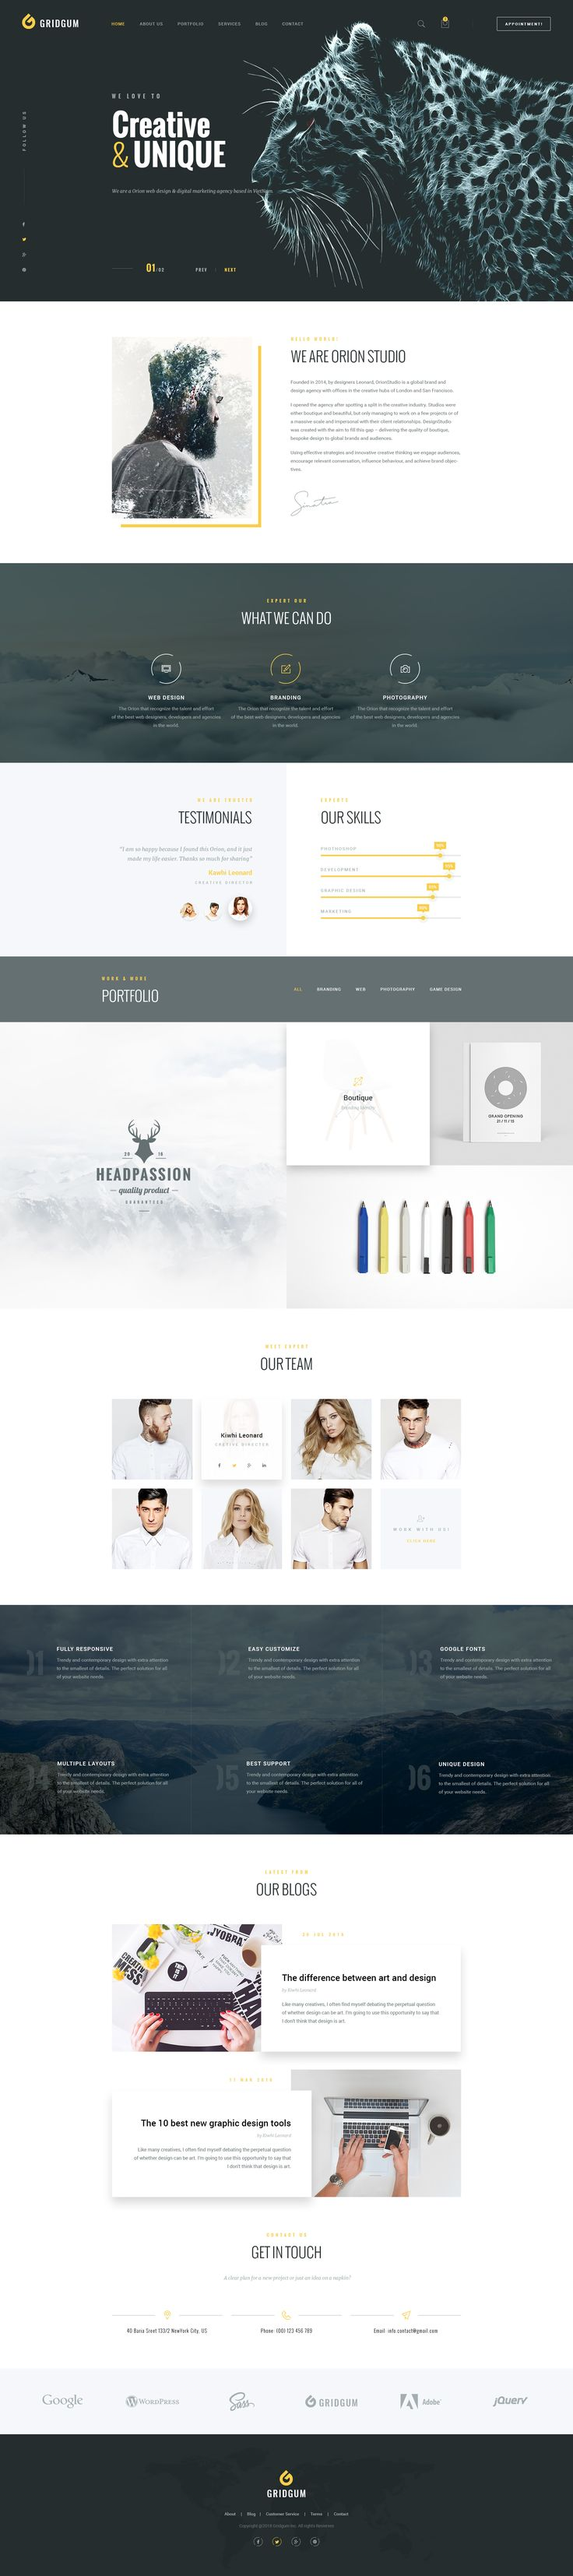 Web Studio - HTML Bootstrap Template  We are happy to introduce our new Bootstrap template which is created by latest Bootstrap 4, CSS and JS frameworks for creative agencies, web design studios, web developers and all the companies with design related services.